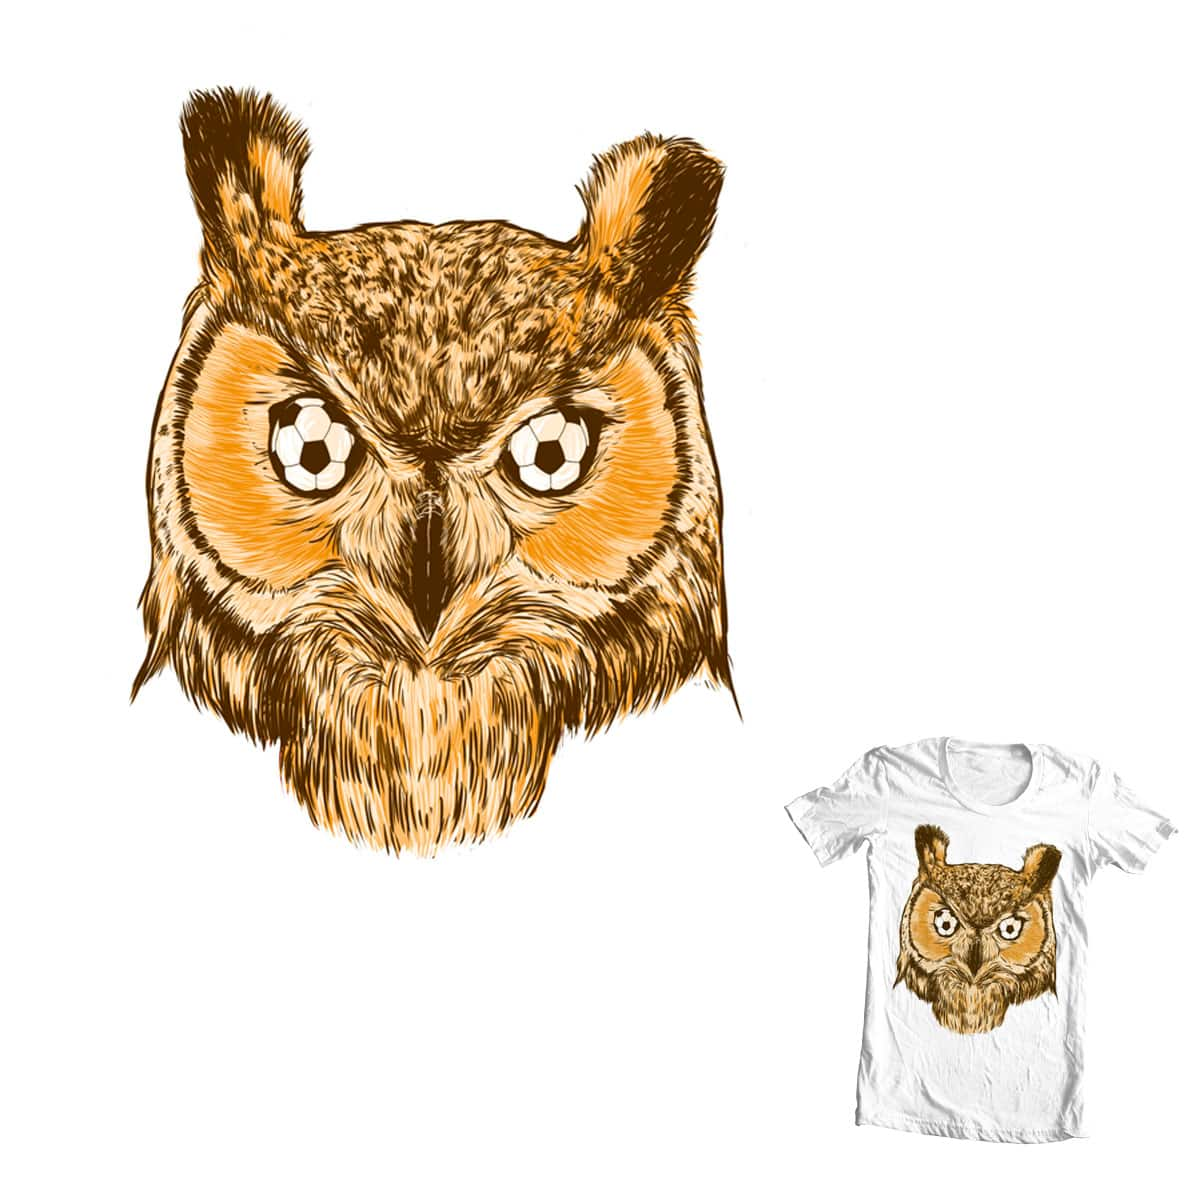 Owl by hadee on Threadless